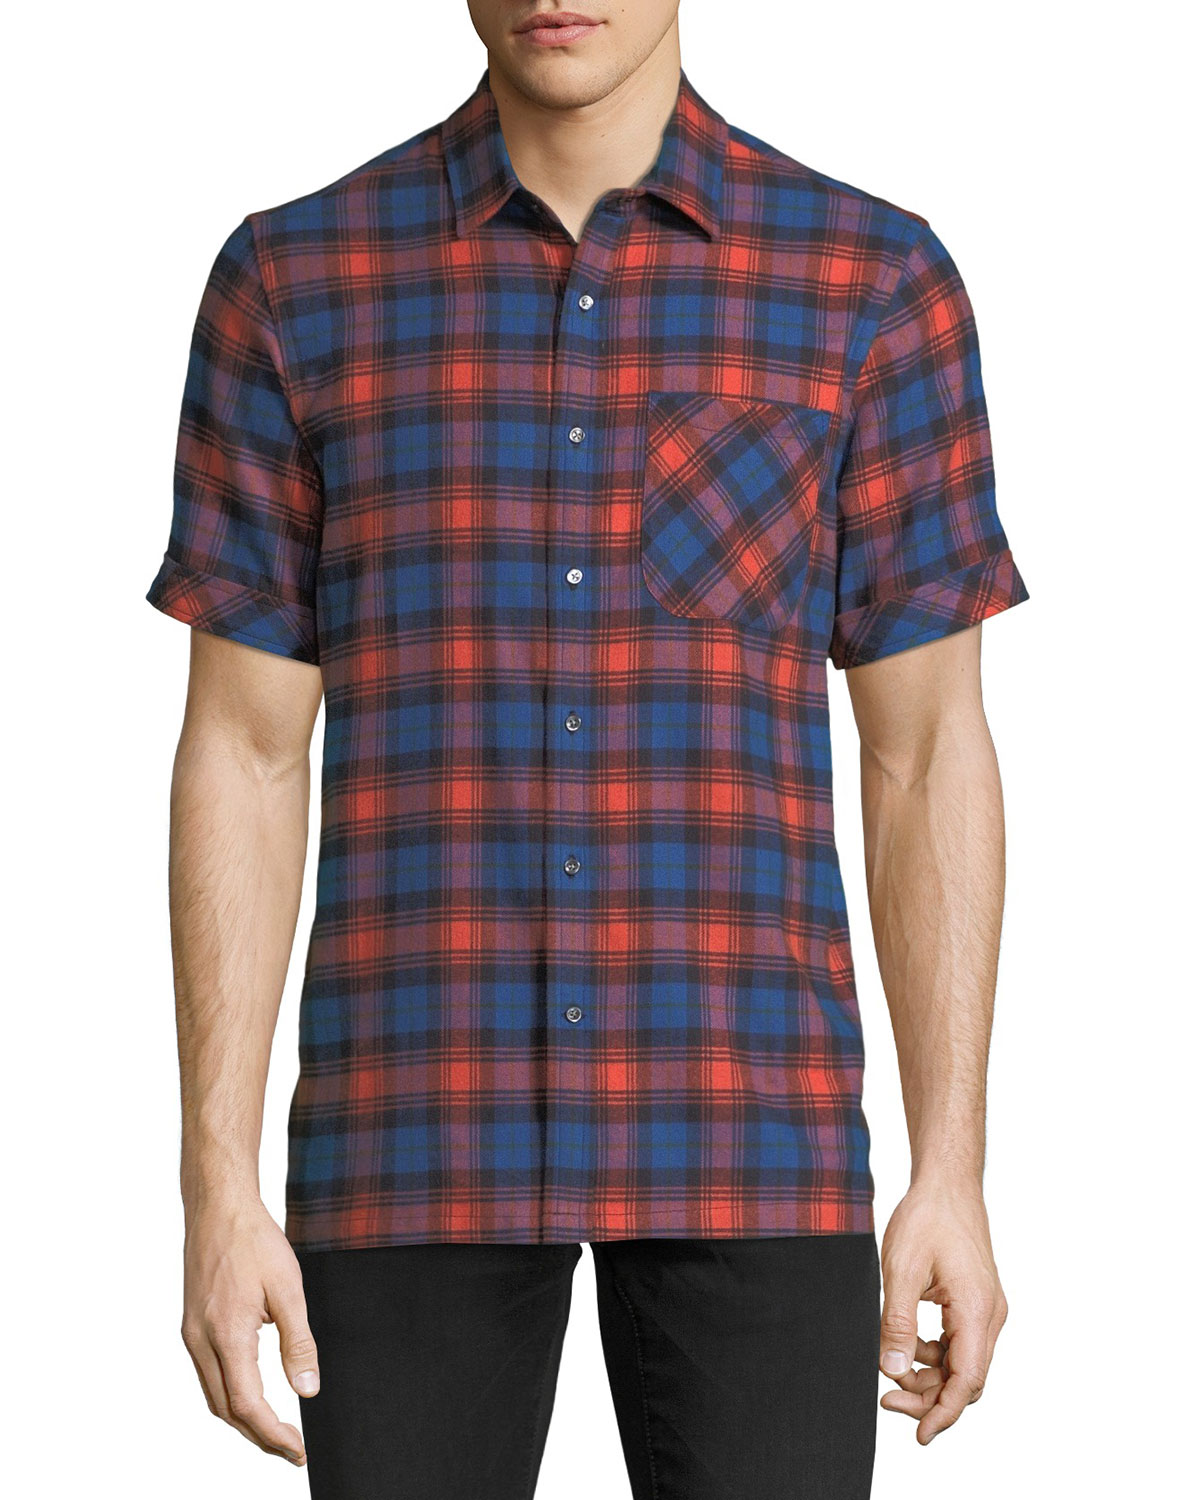 Men's Plaid Short-Sleeve Camp Shirt